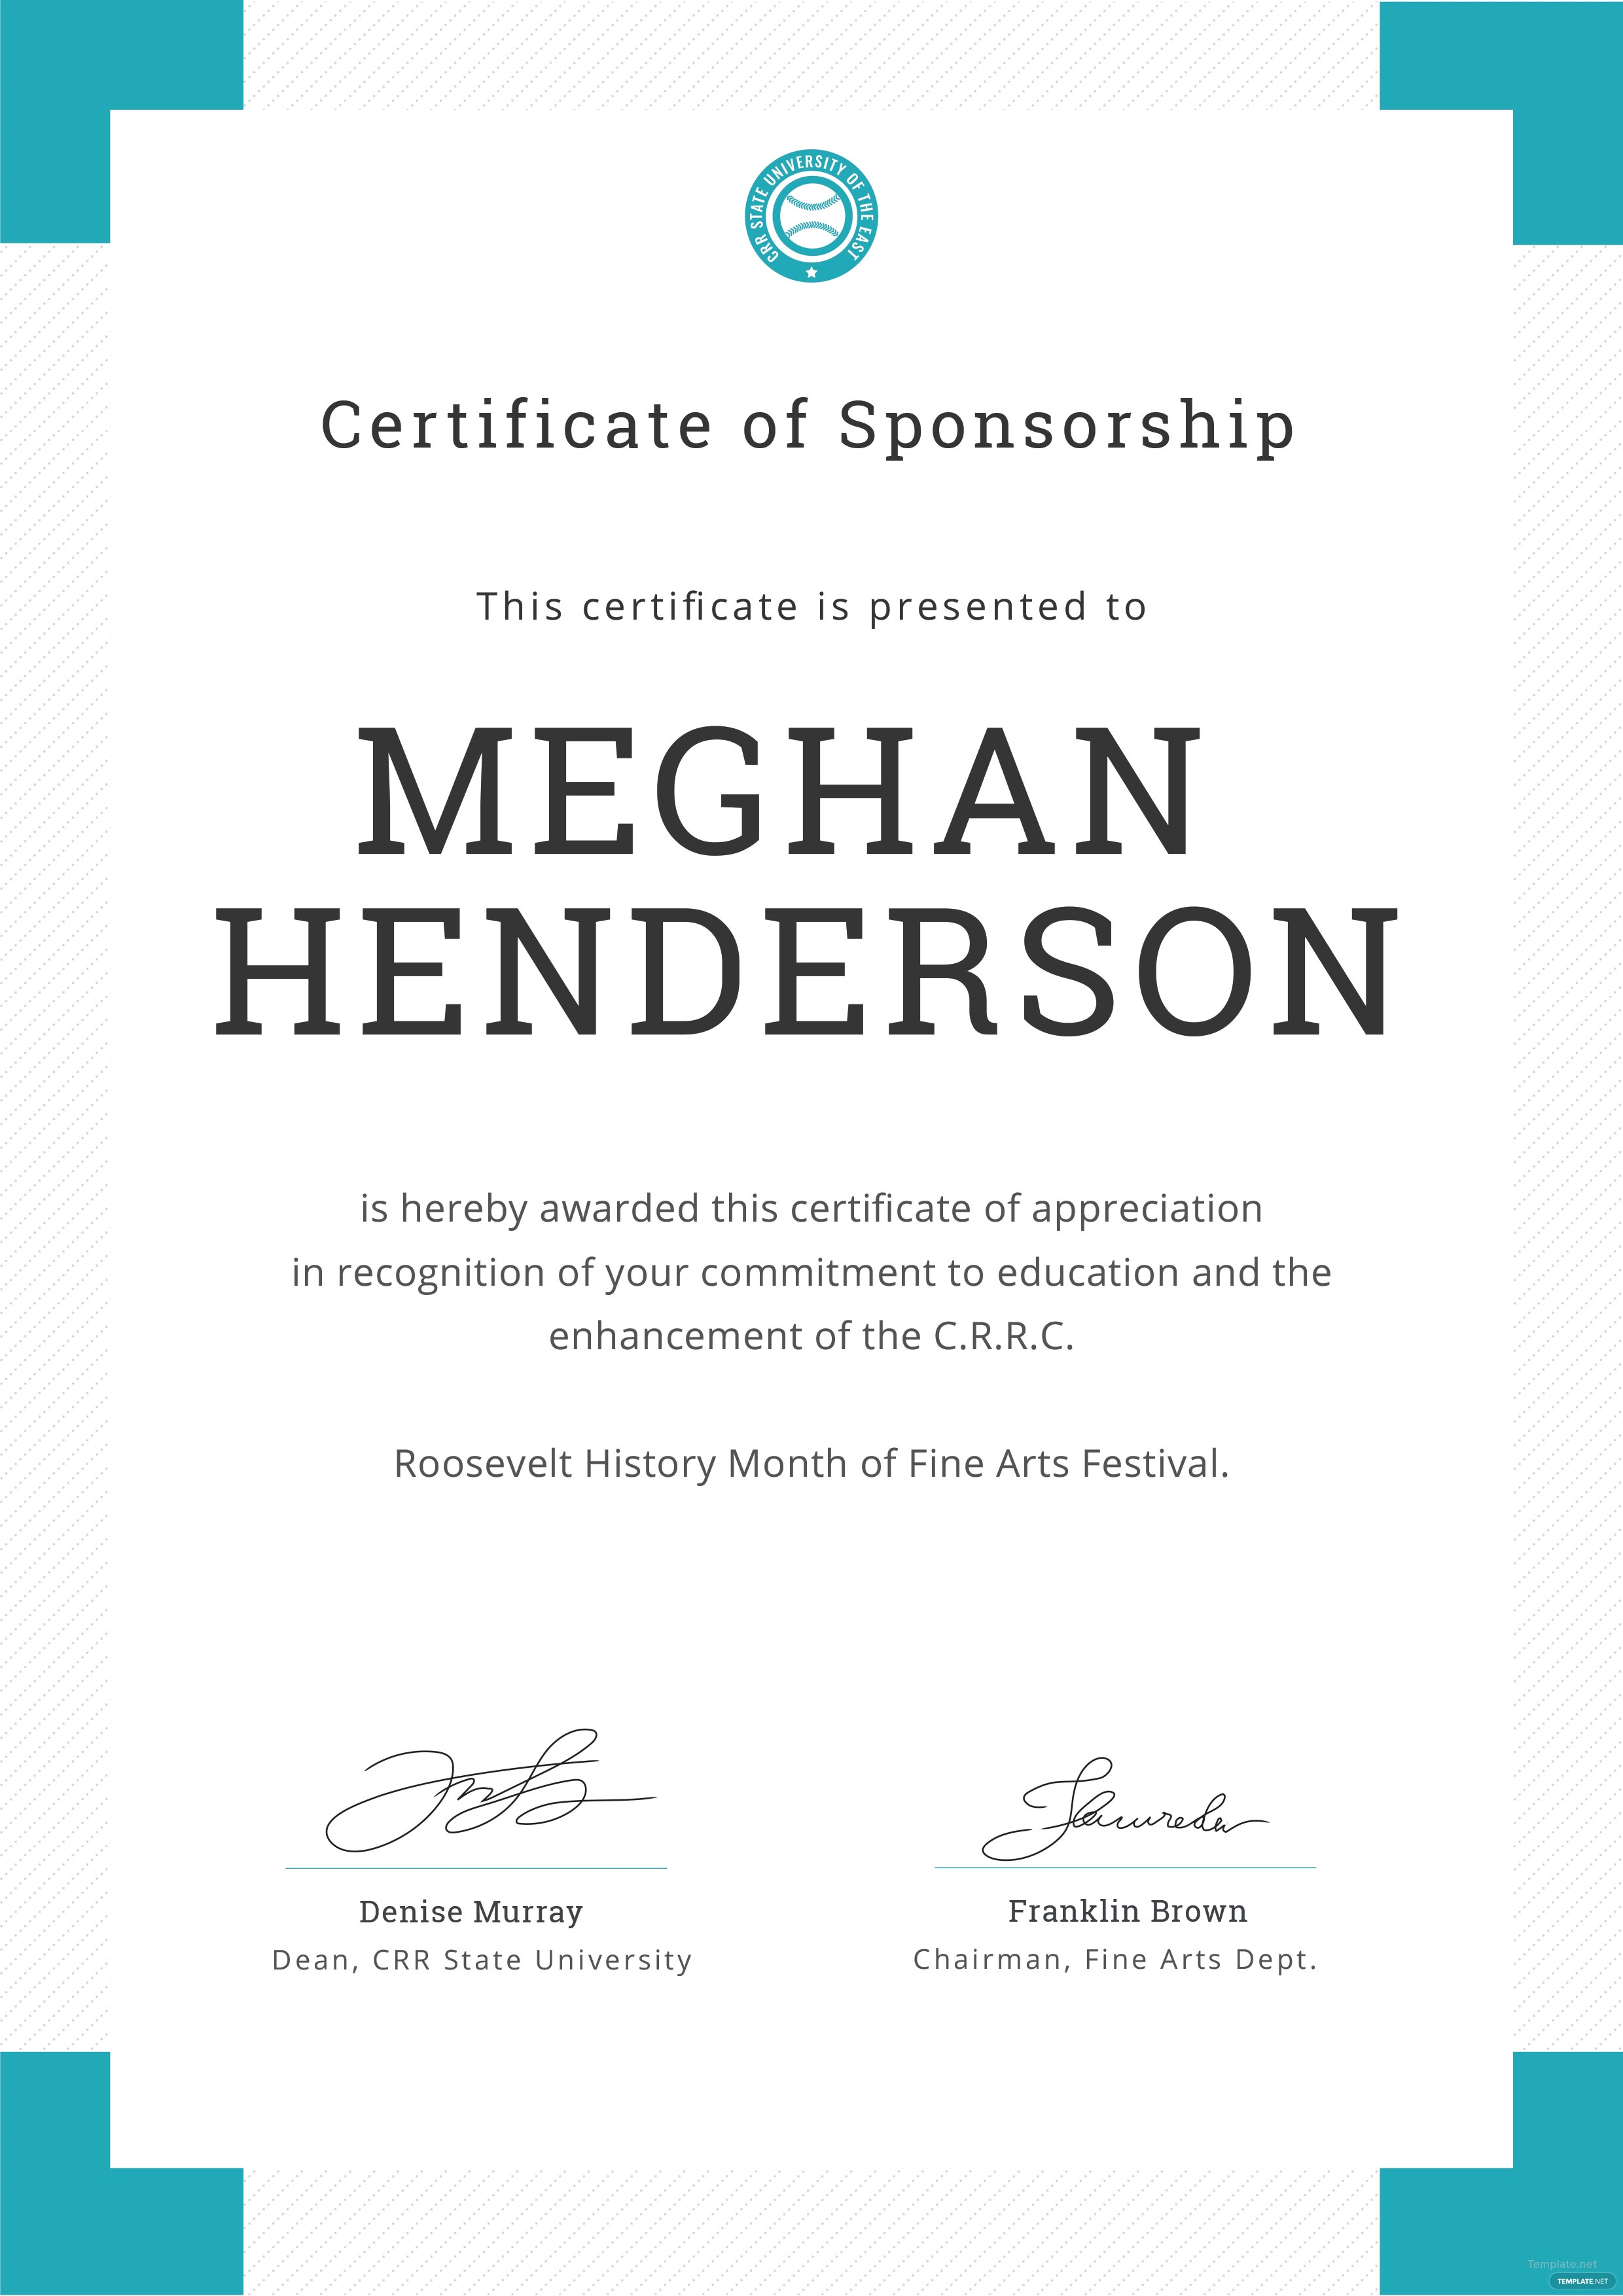 Free sponsorship appreciation certificate template in adobe click to see full template editable sponsorship appreciation certificate yadclub Gallery